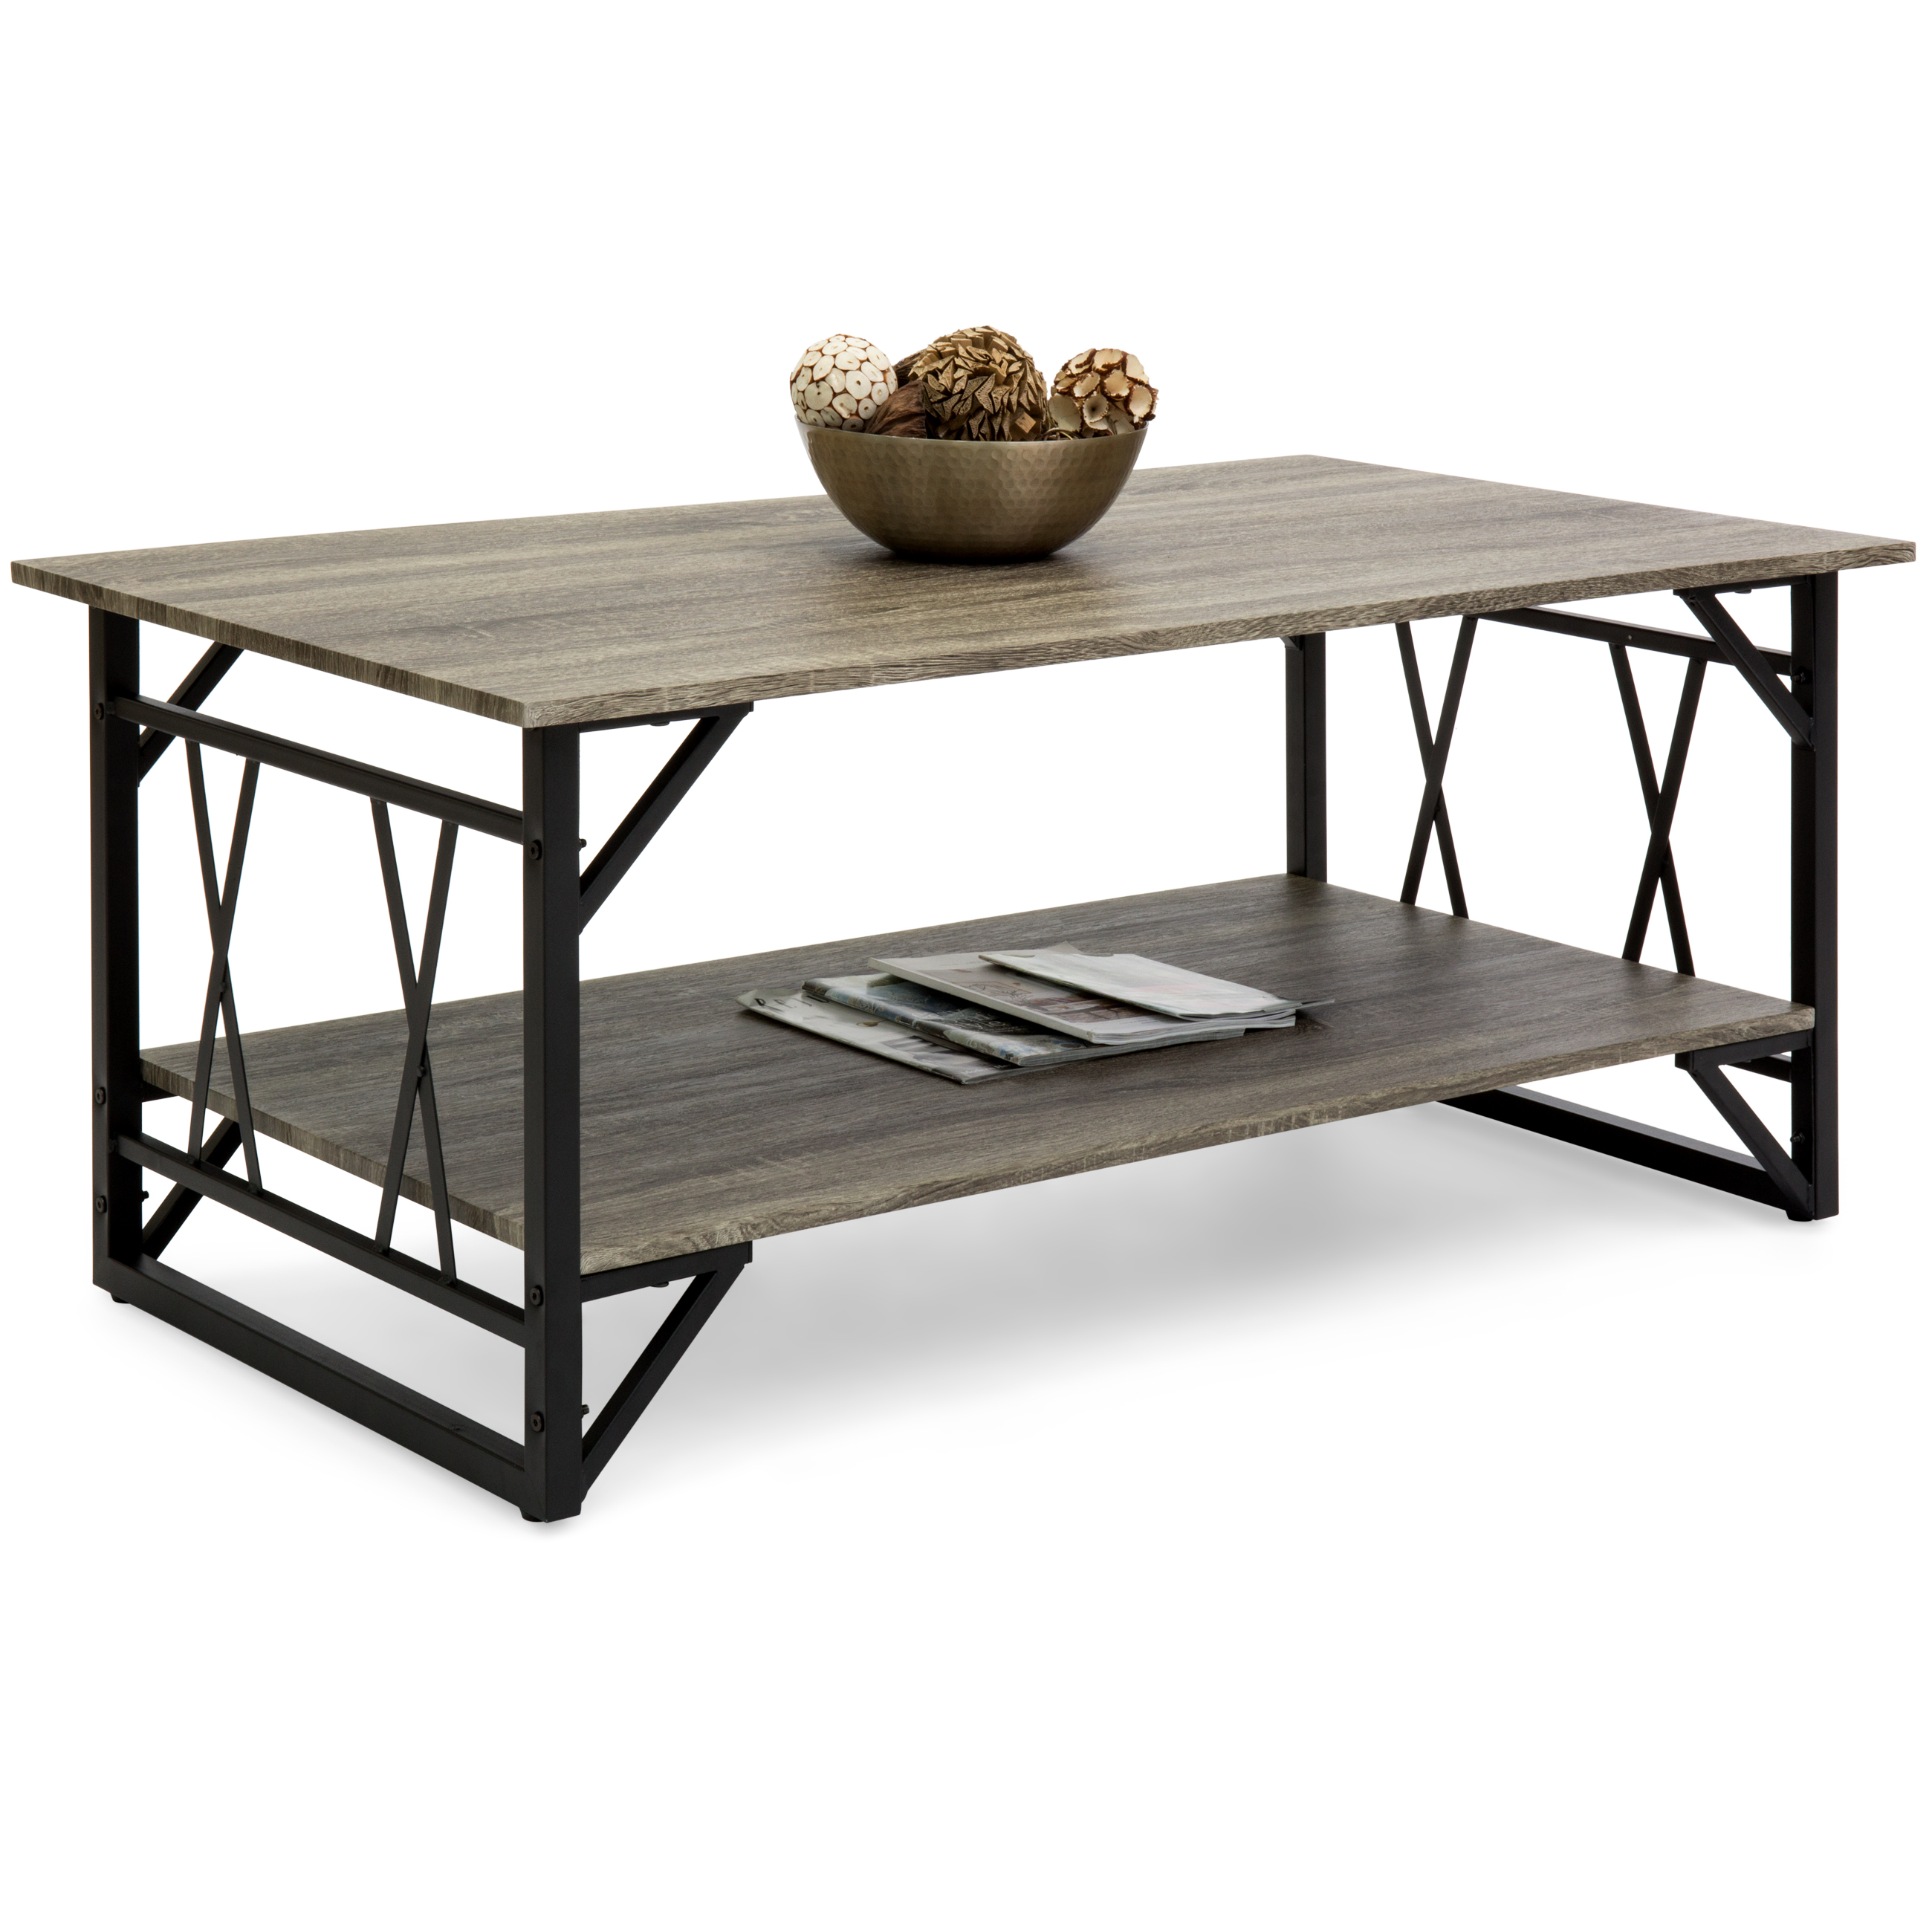 Best Choice Products Modern Metal and Wooden Coffee Table by Best Choice Products